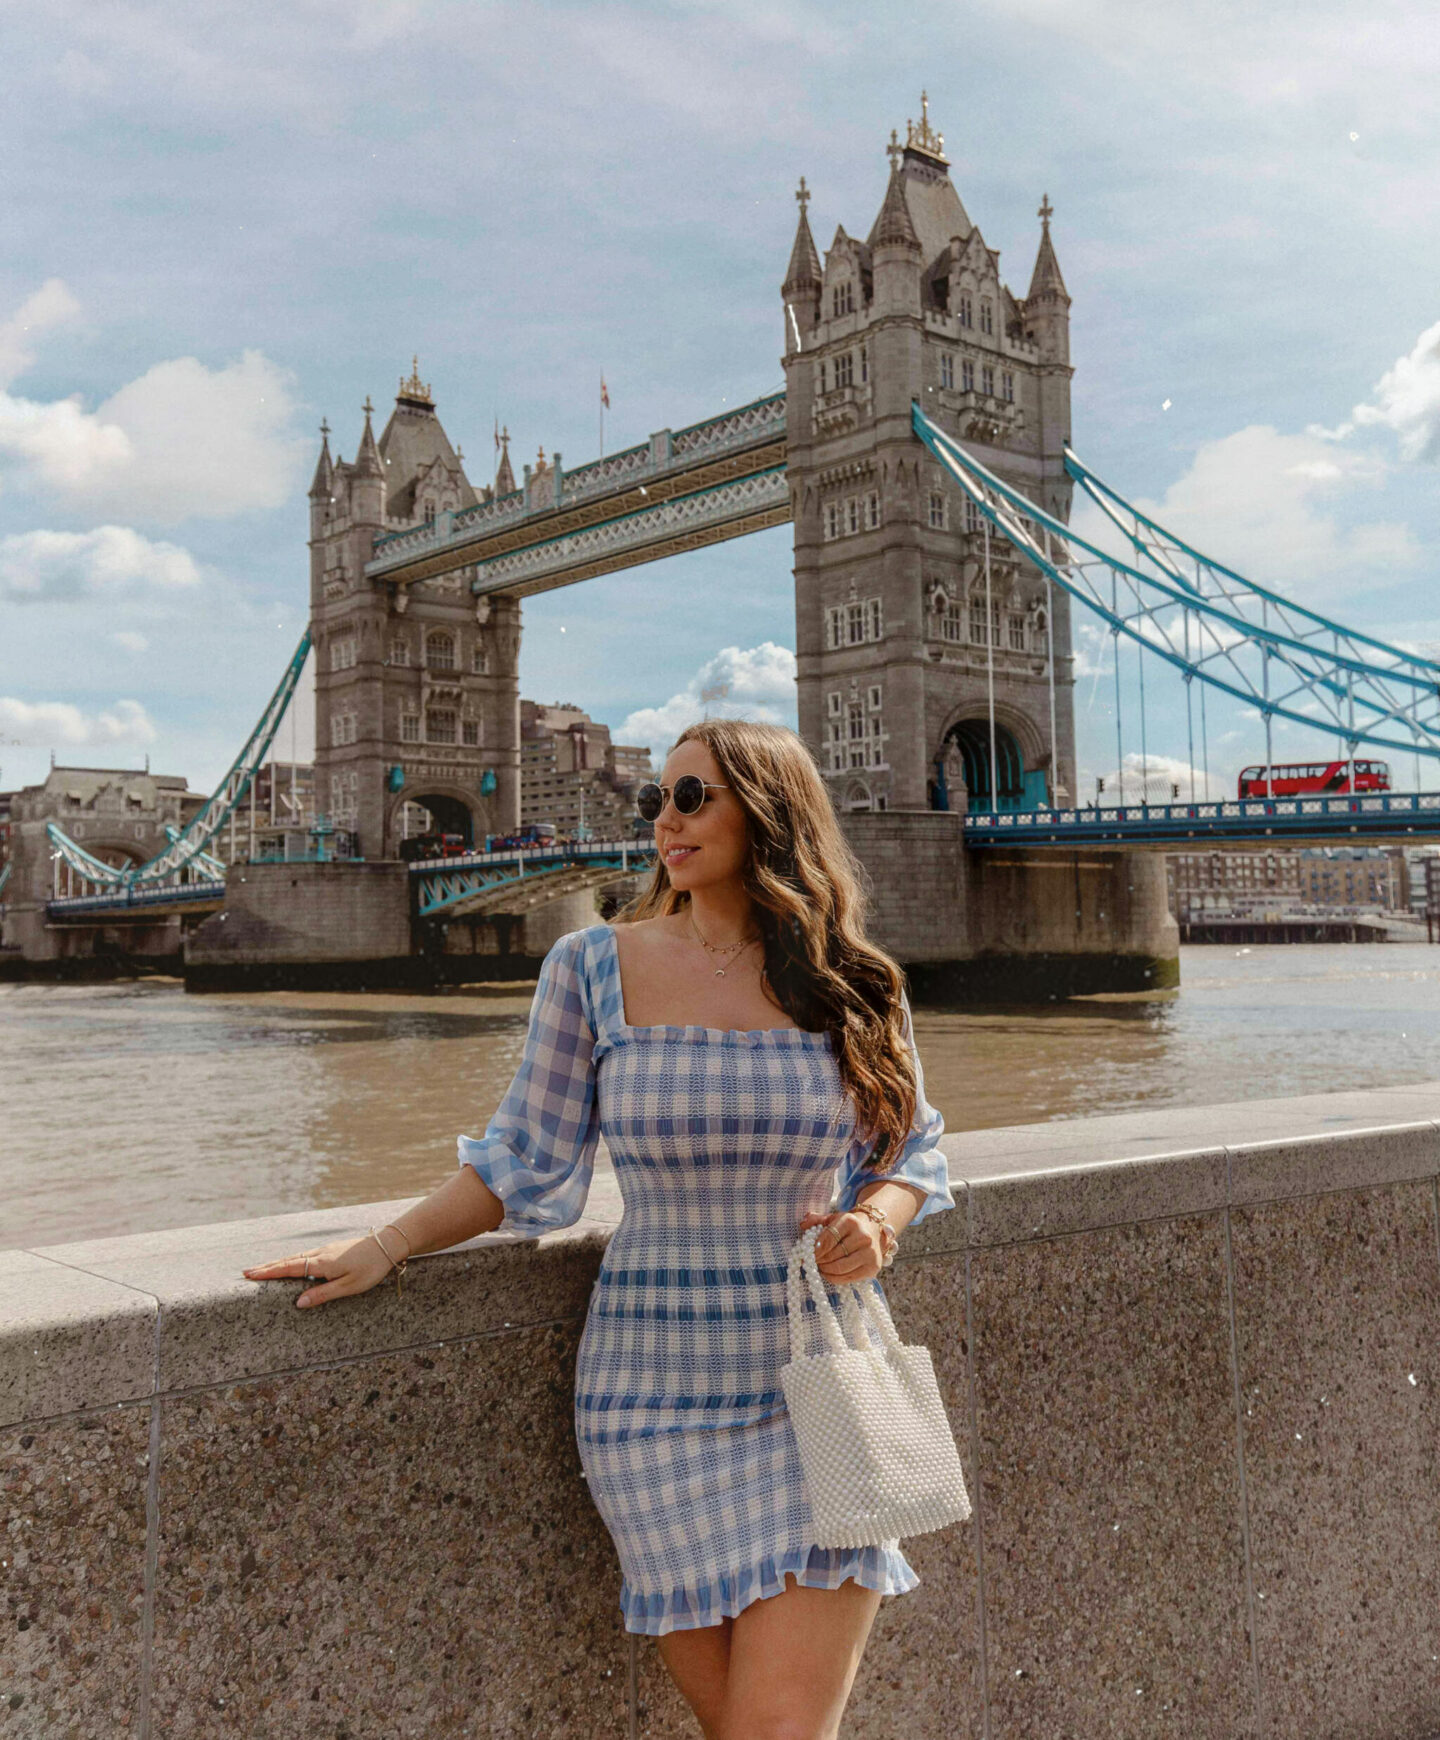 kelseyinlondon moving to london guide how to move to london tips kelsey heinrichs tower bridge